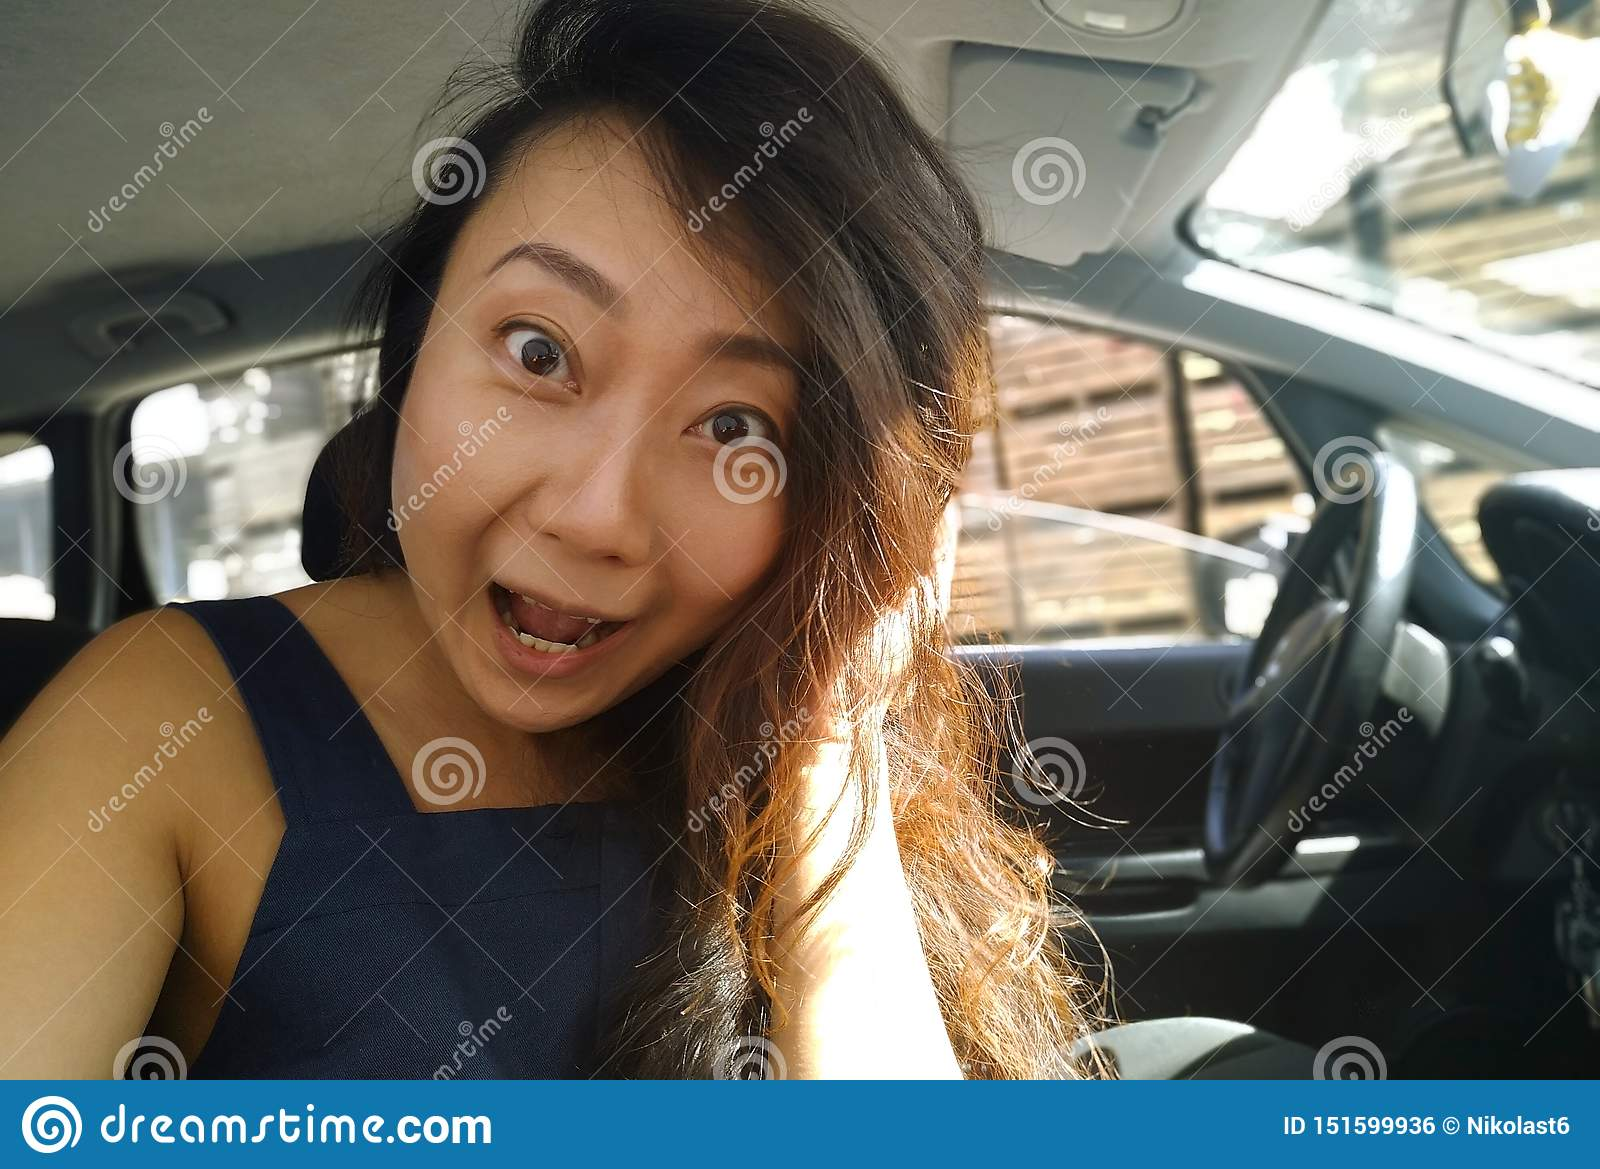 Young asian girl sitting inside of a car and surprised looking at camera.